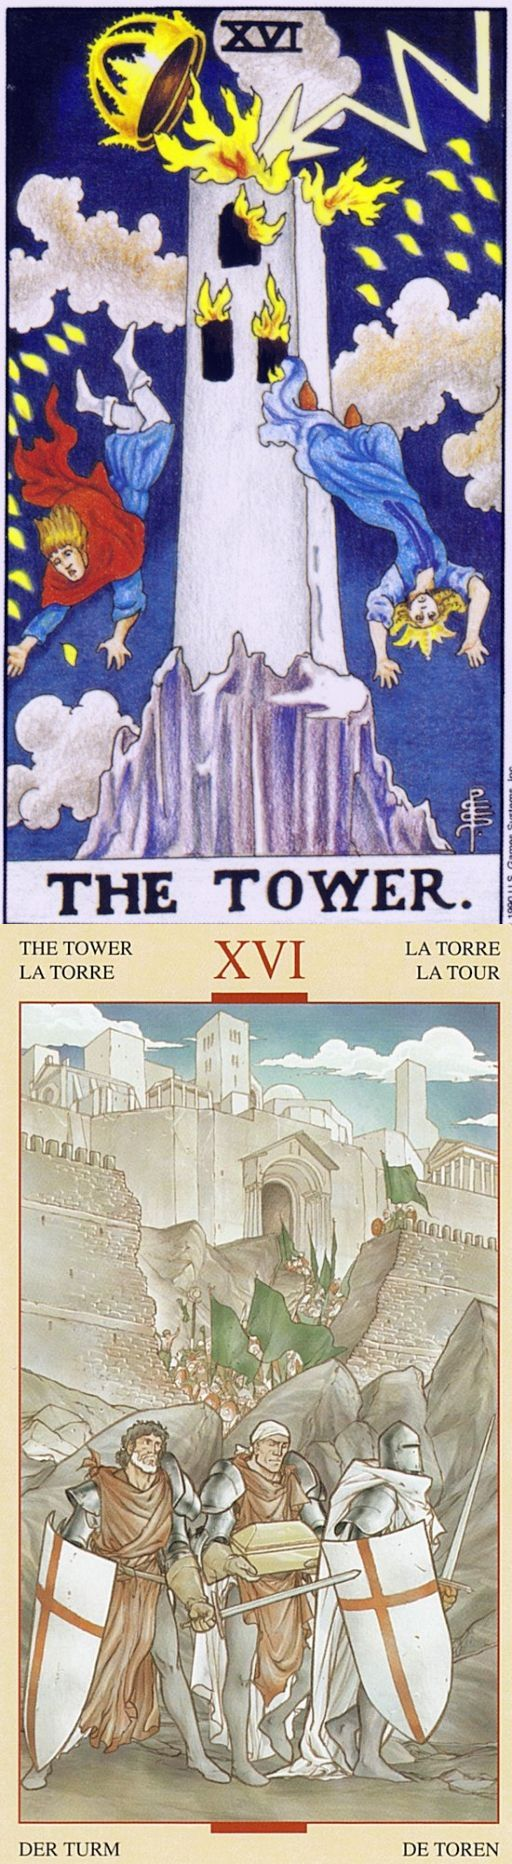 THE TOWER: collapse and avoiding suffering that could lead to growth (reverse). Universal Tarot deck and Holy Grail Tarot deck: tarot golden, free online tarot cards and tarot rare. Best 2018 paganism men and tarot artwork. #tarotart #wicca #empress #tarotapp #androidapp